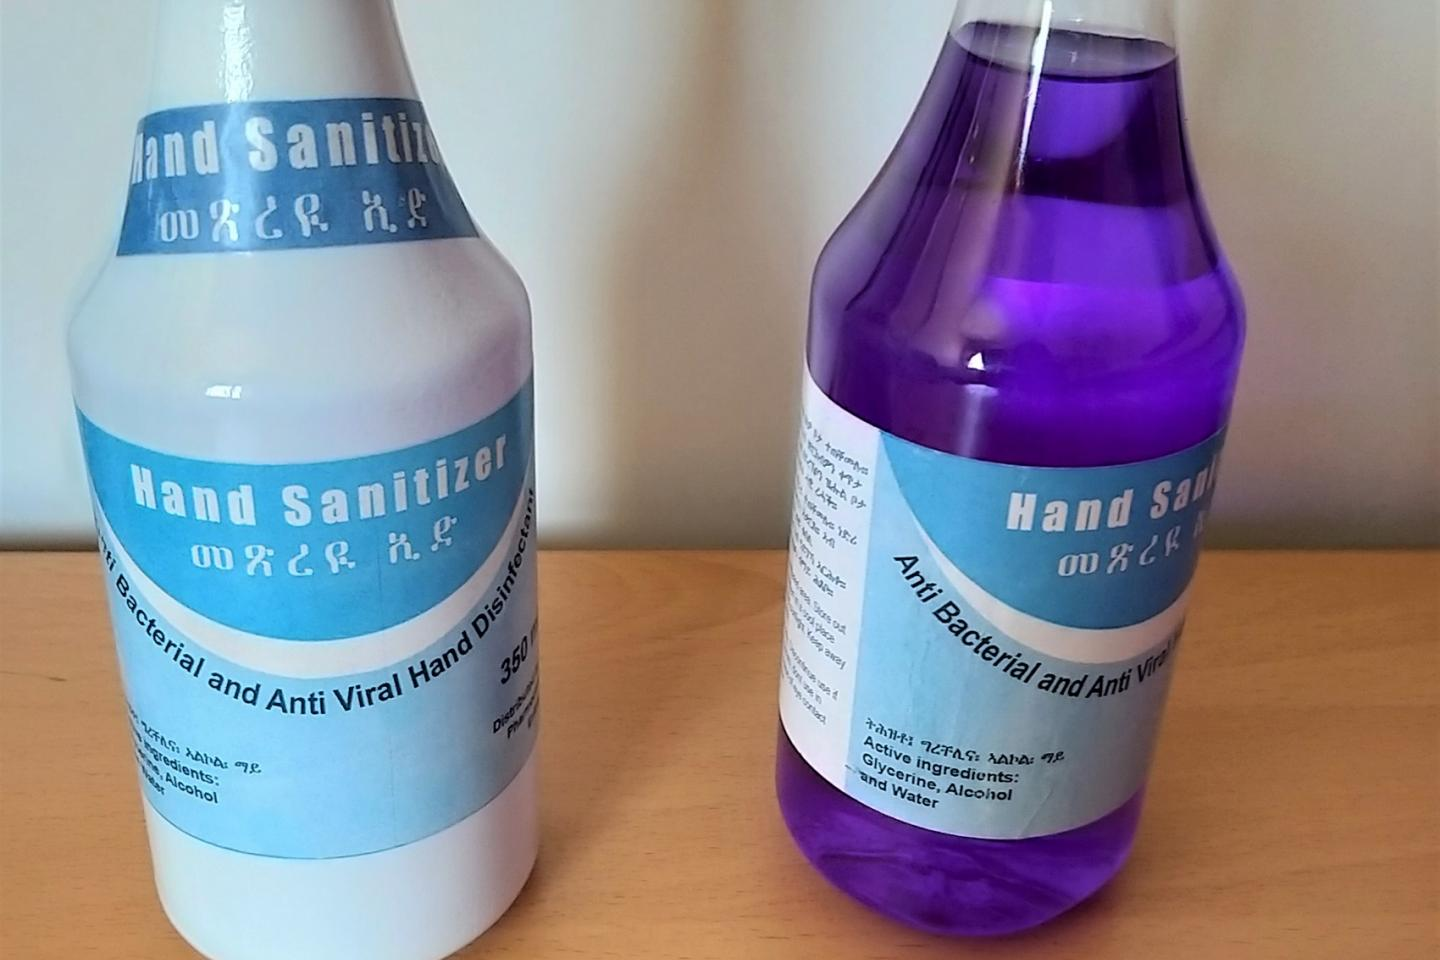 Bottles of hand sanitizers